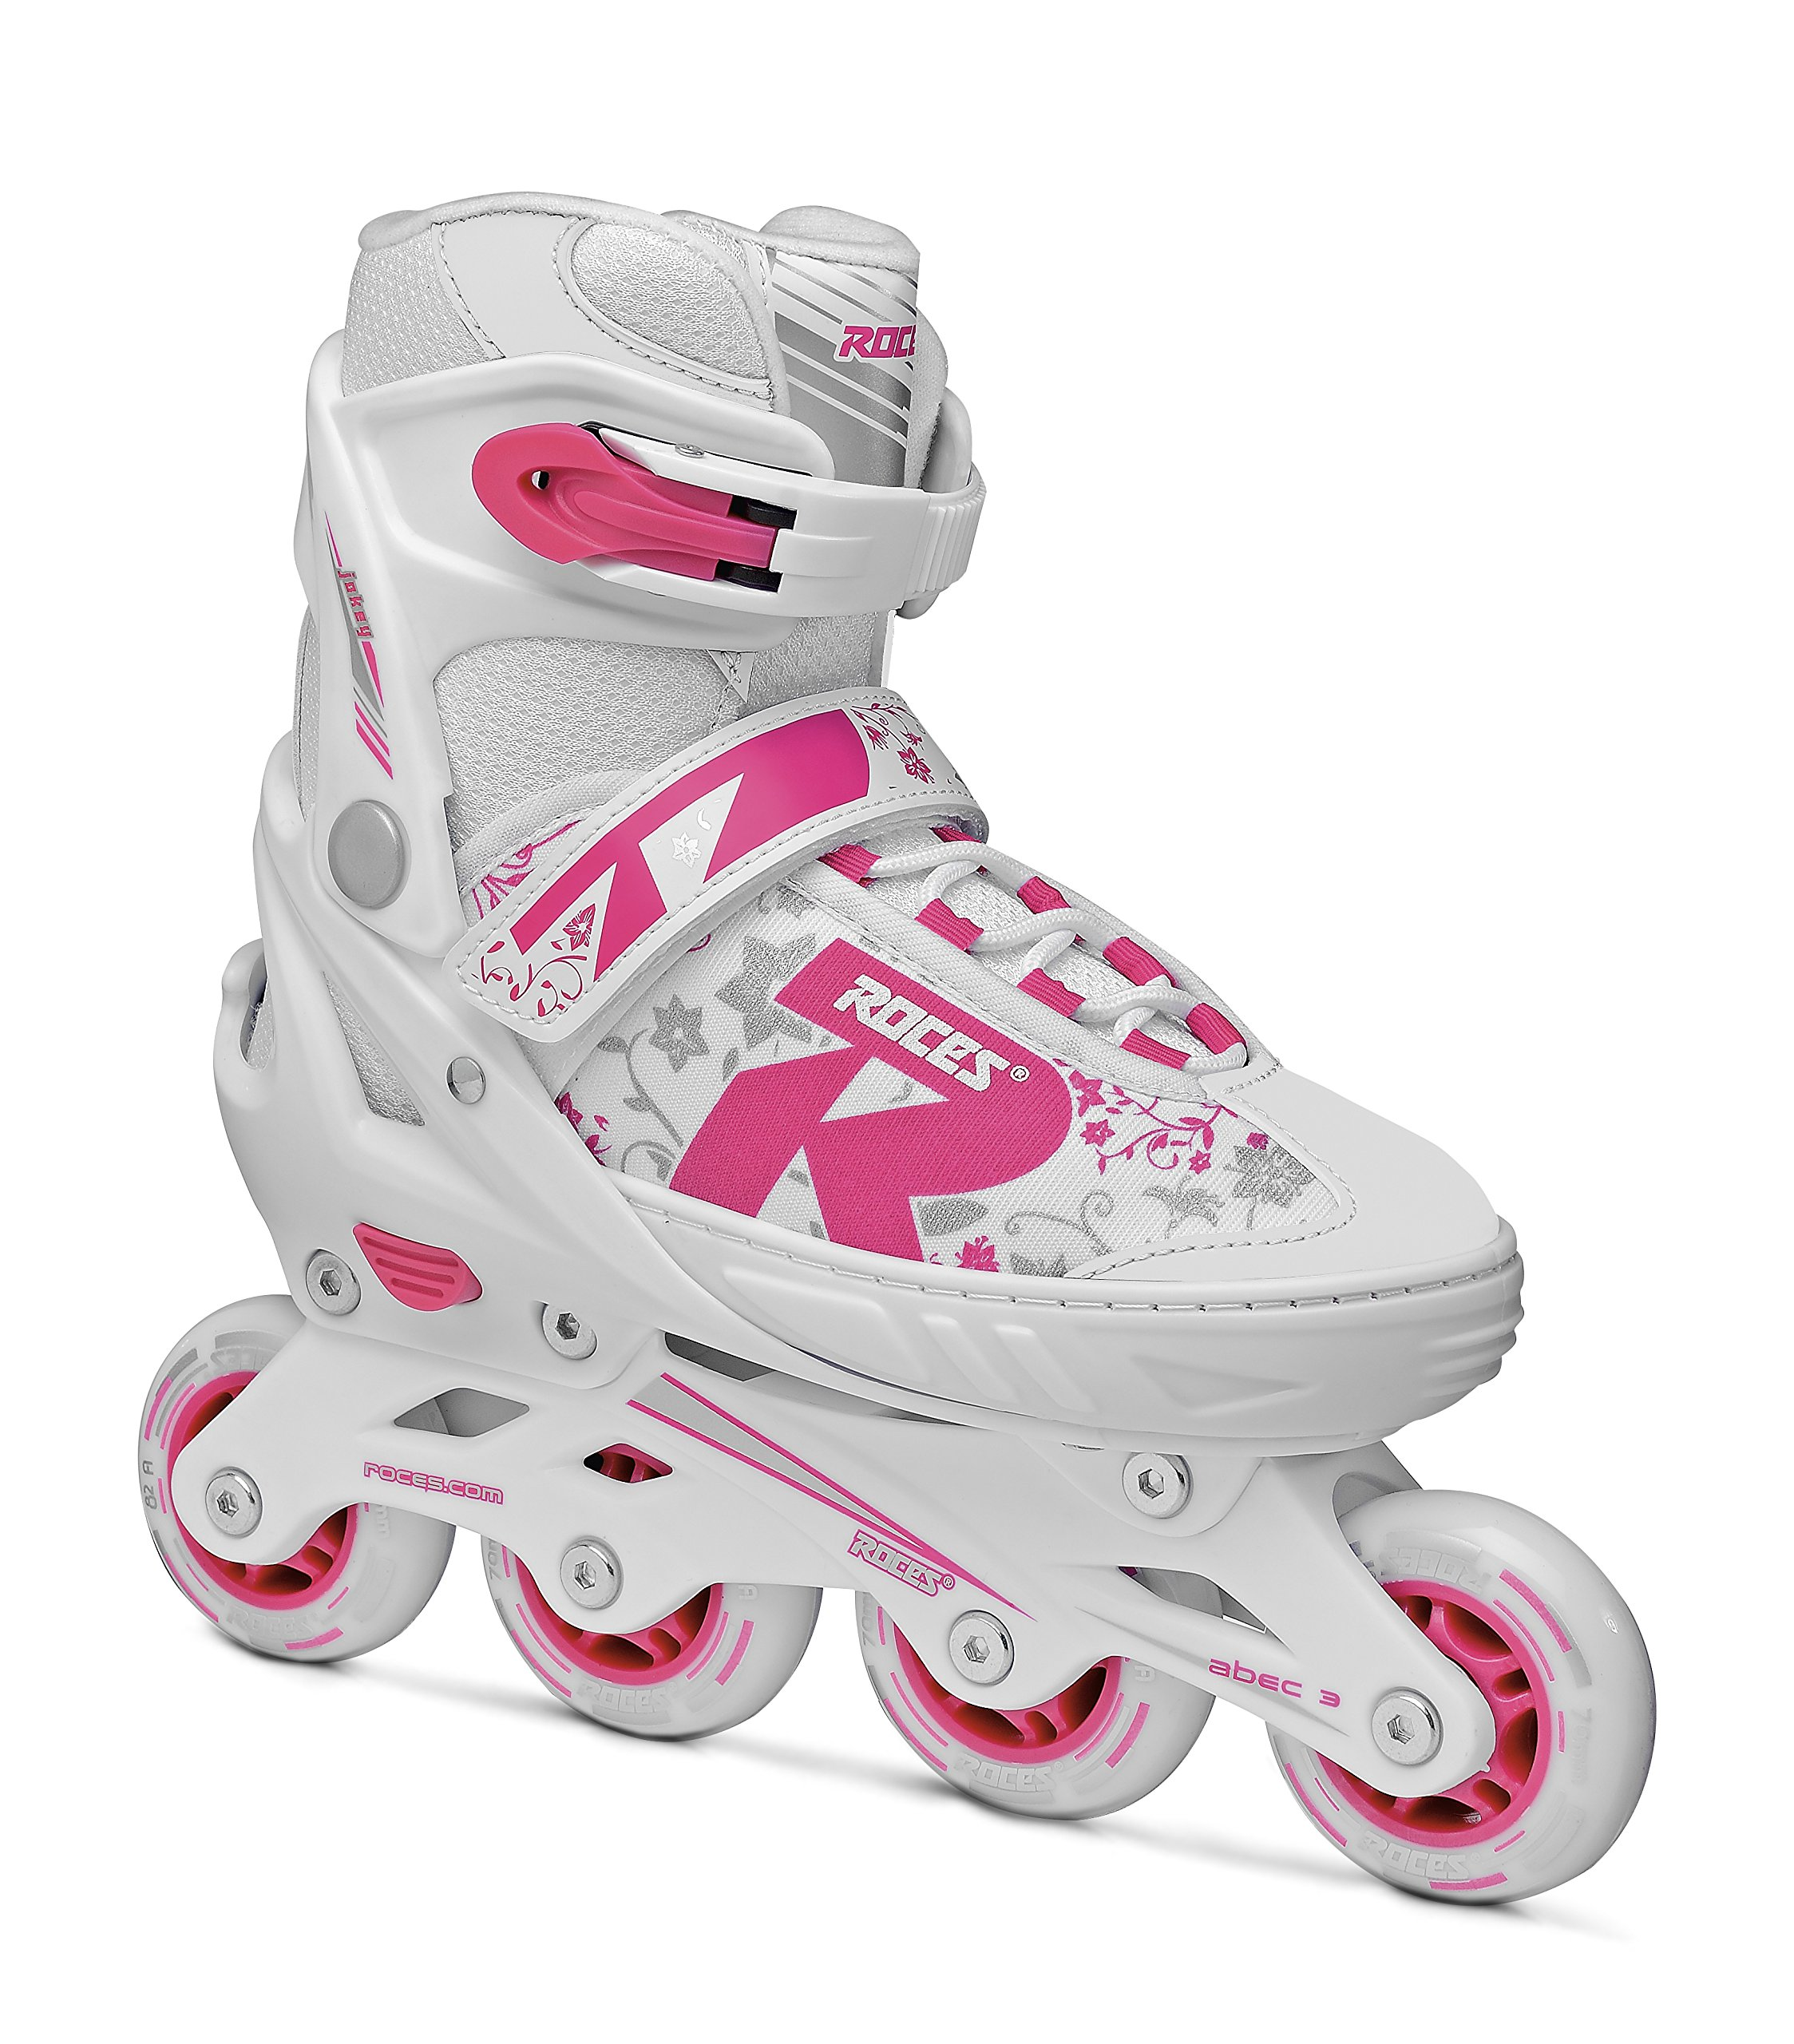 Inline-Skates Compy 8.0 Roces Compy 8.0 Girls Inline Skates White-Violet Girls